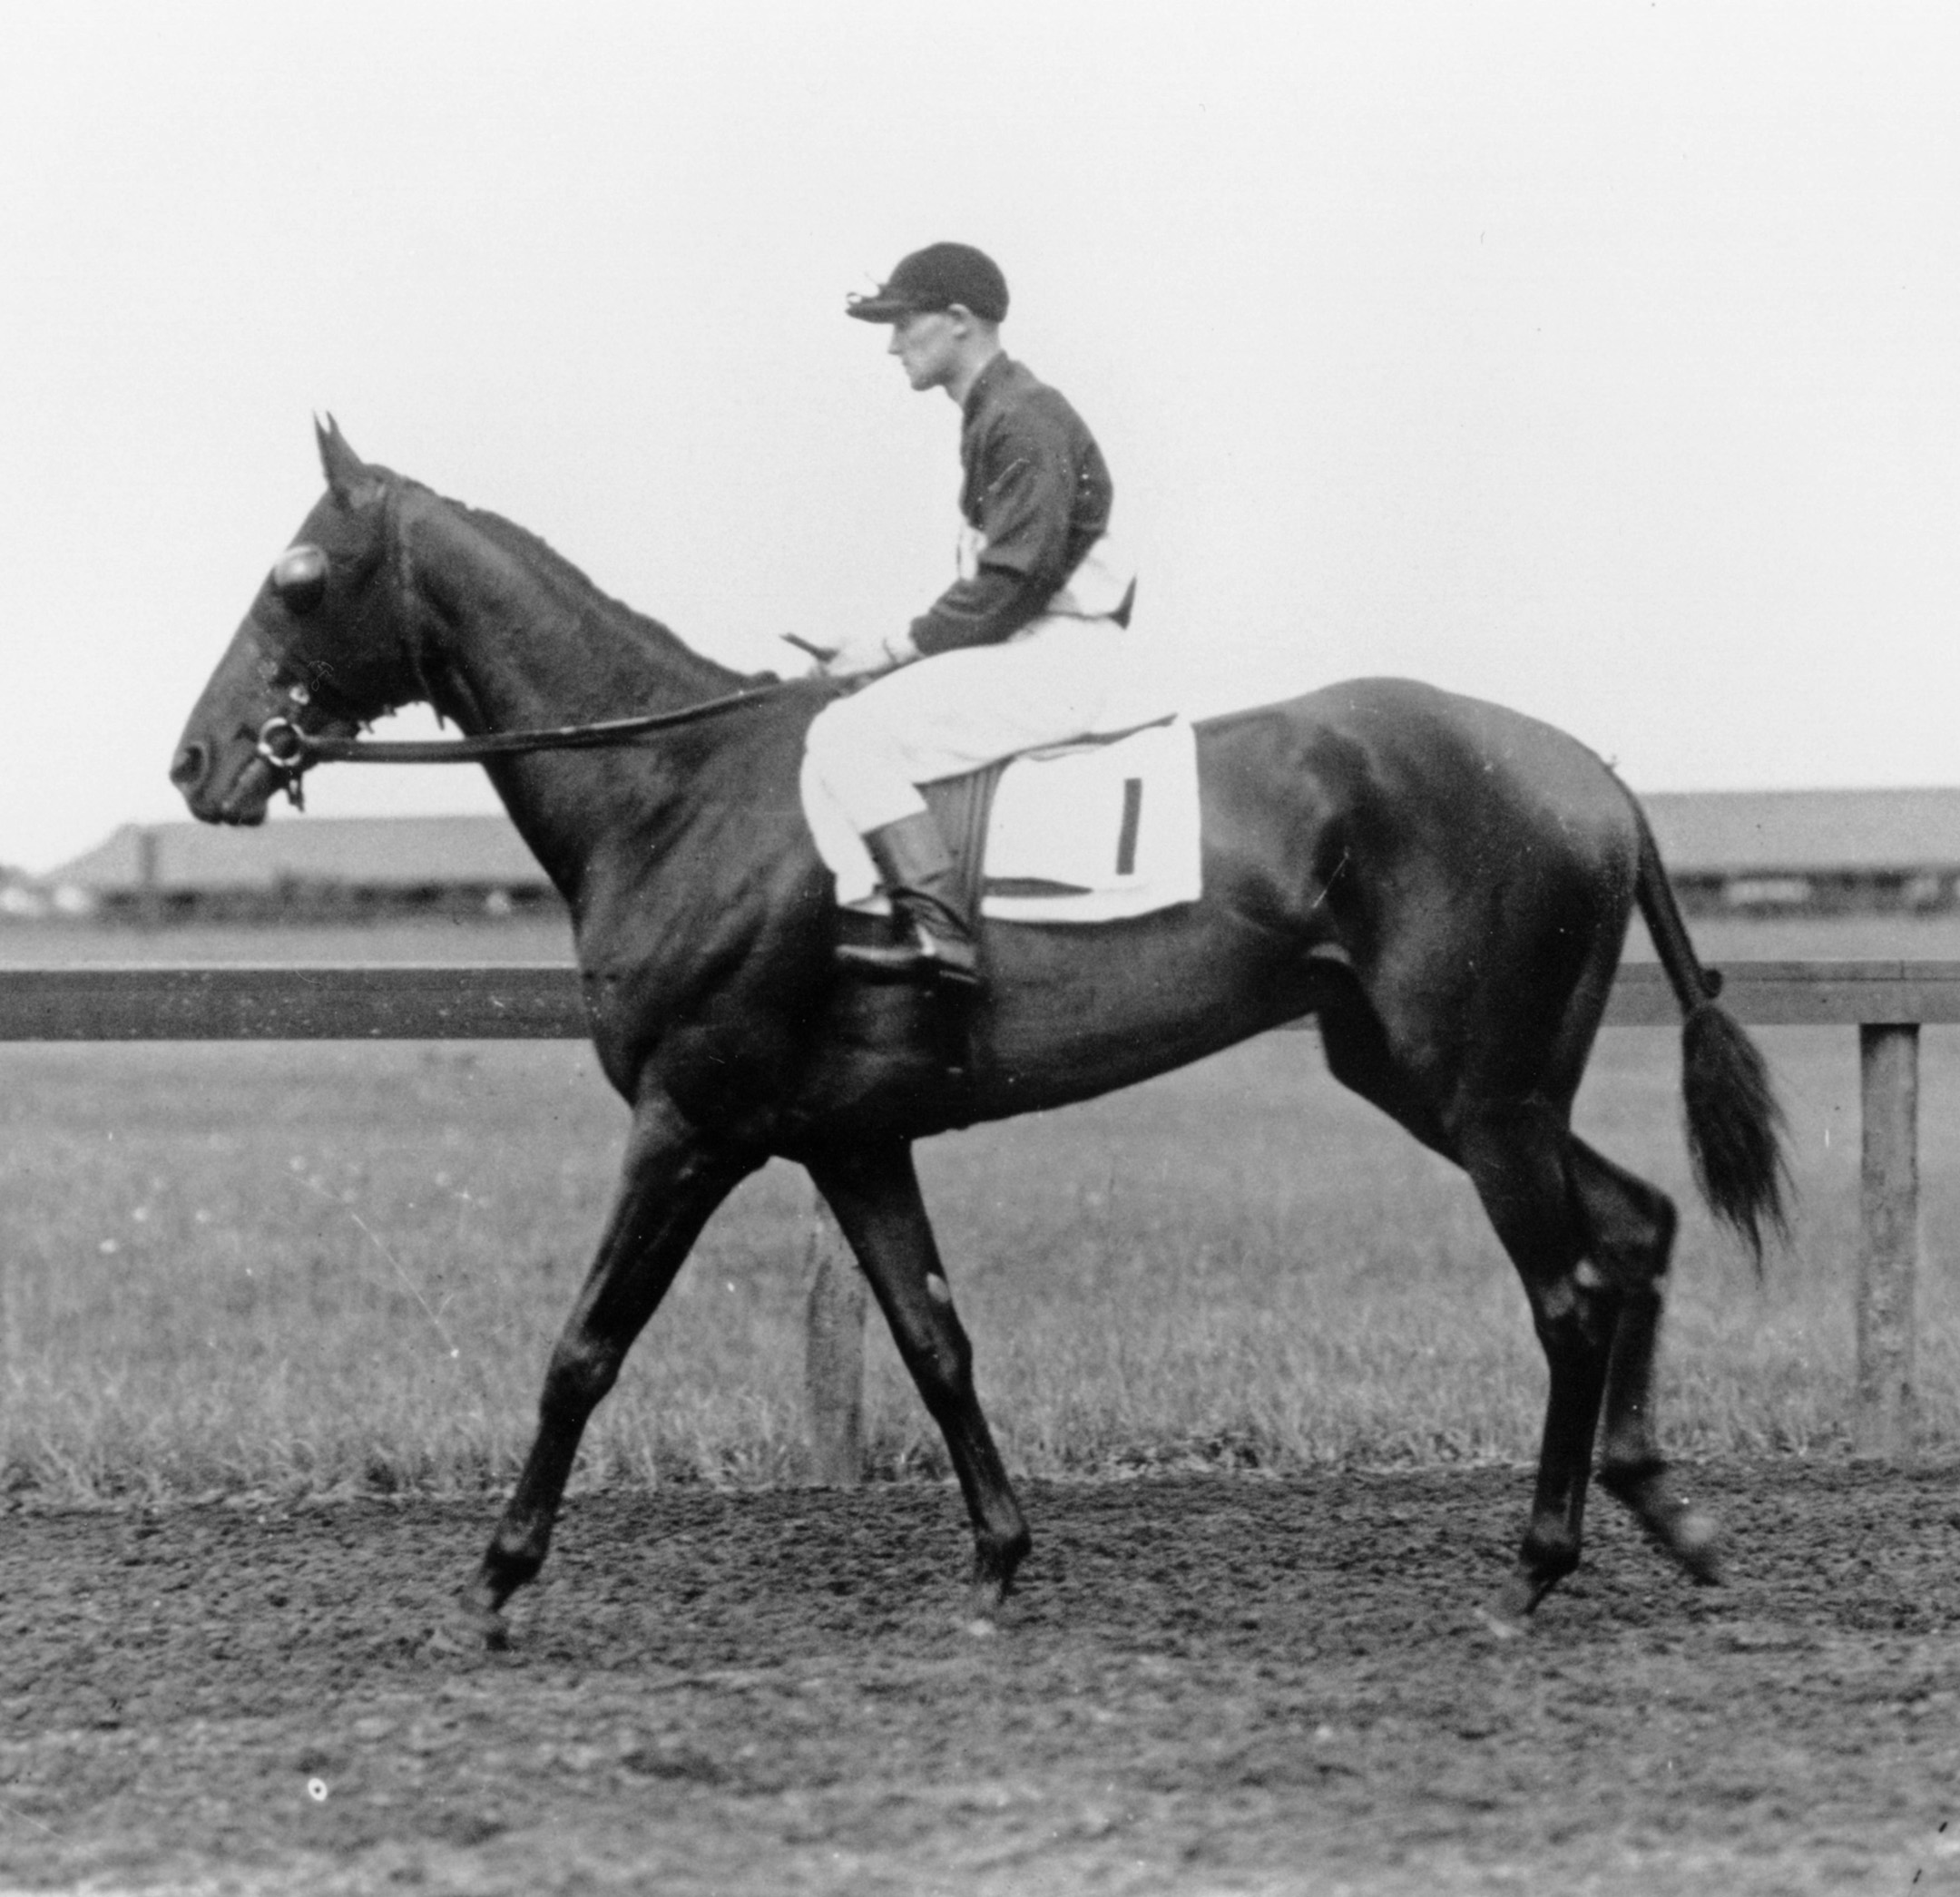 Roamer with James Butwell up (Keeneland Library Cook Collection/Museum Collection)